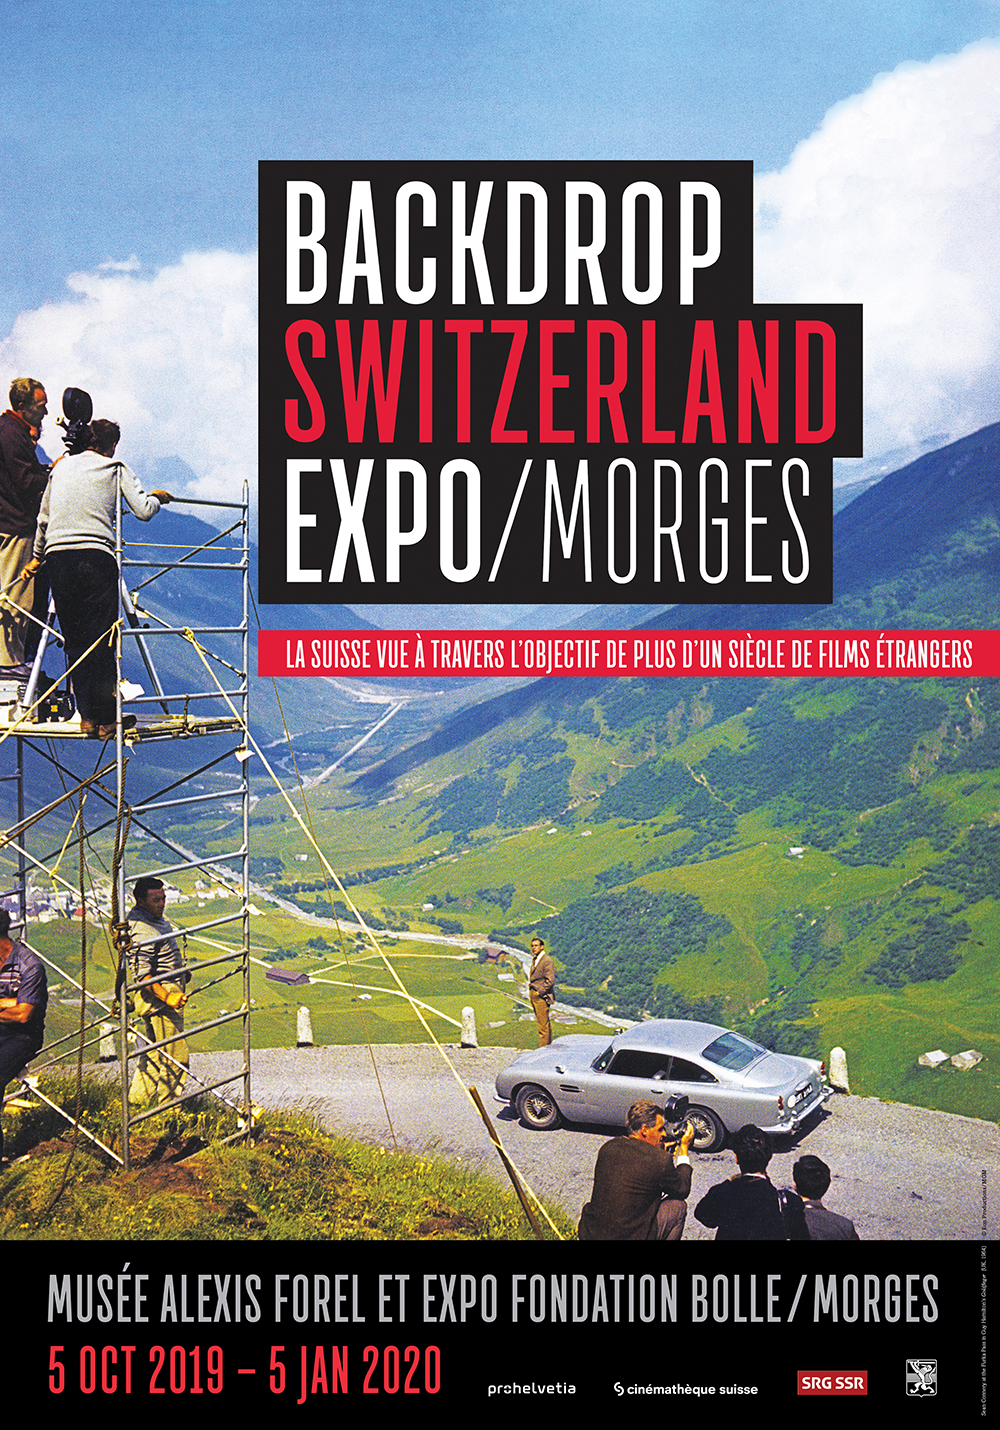 Ausstellung BACKDROP SWITZERLAND